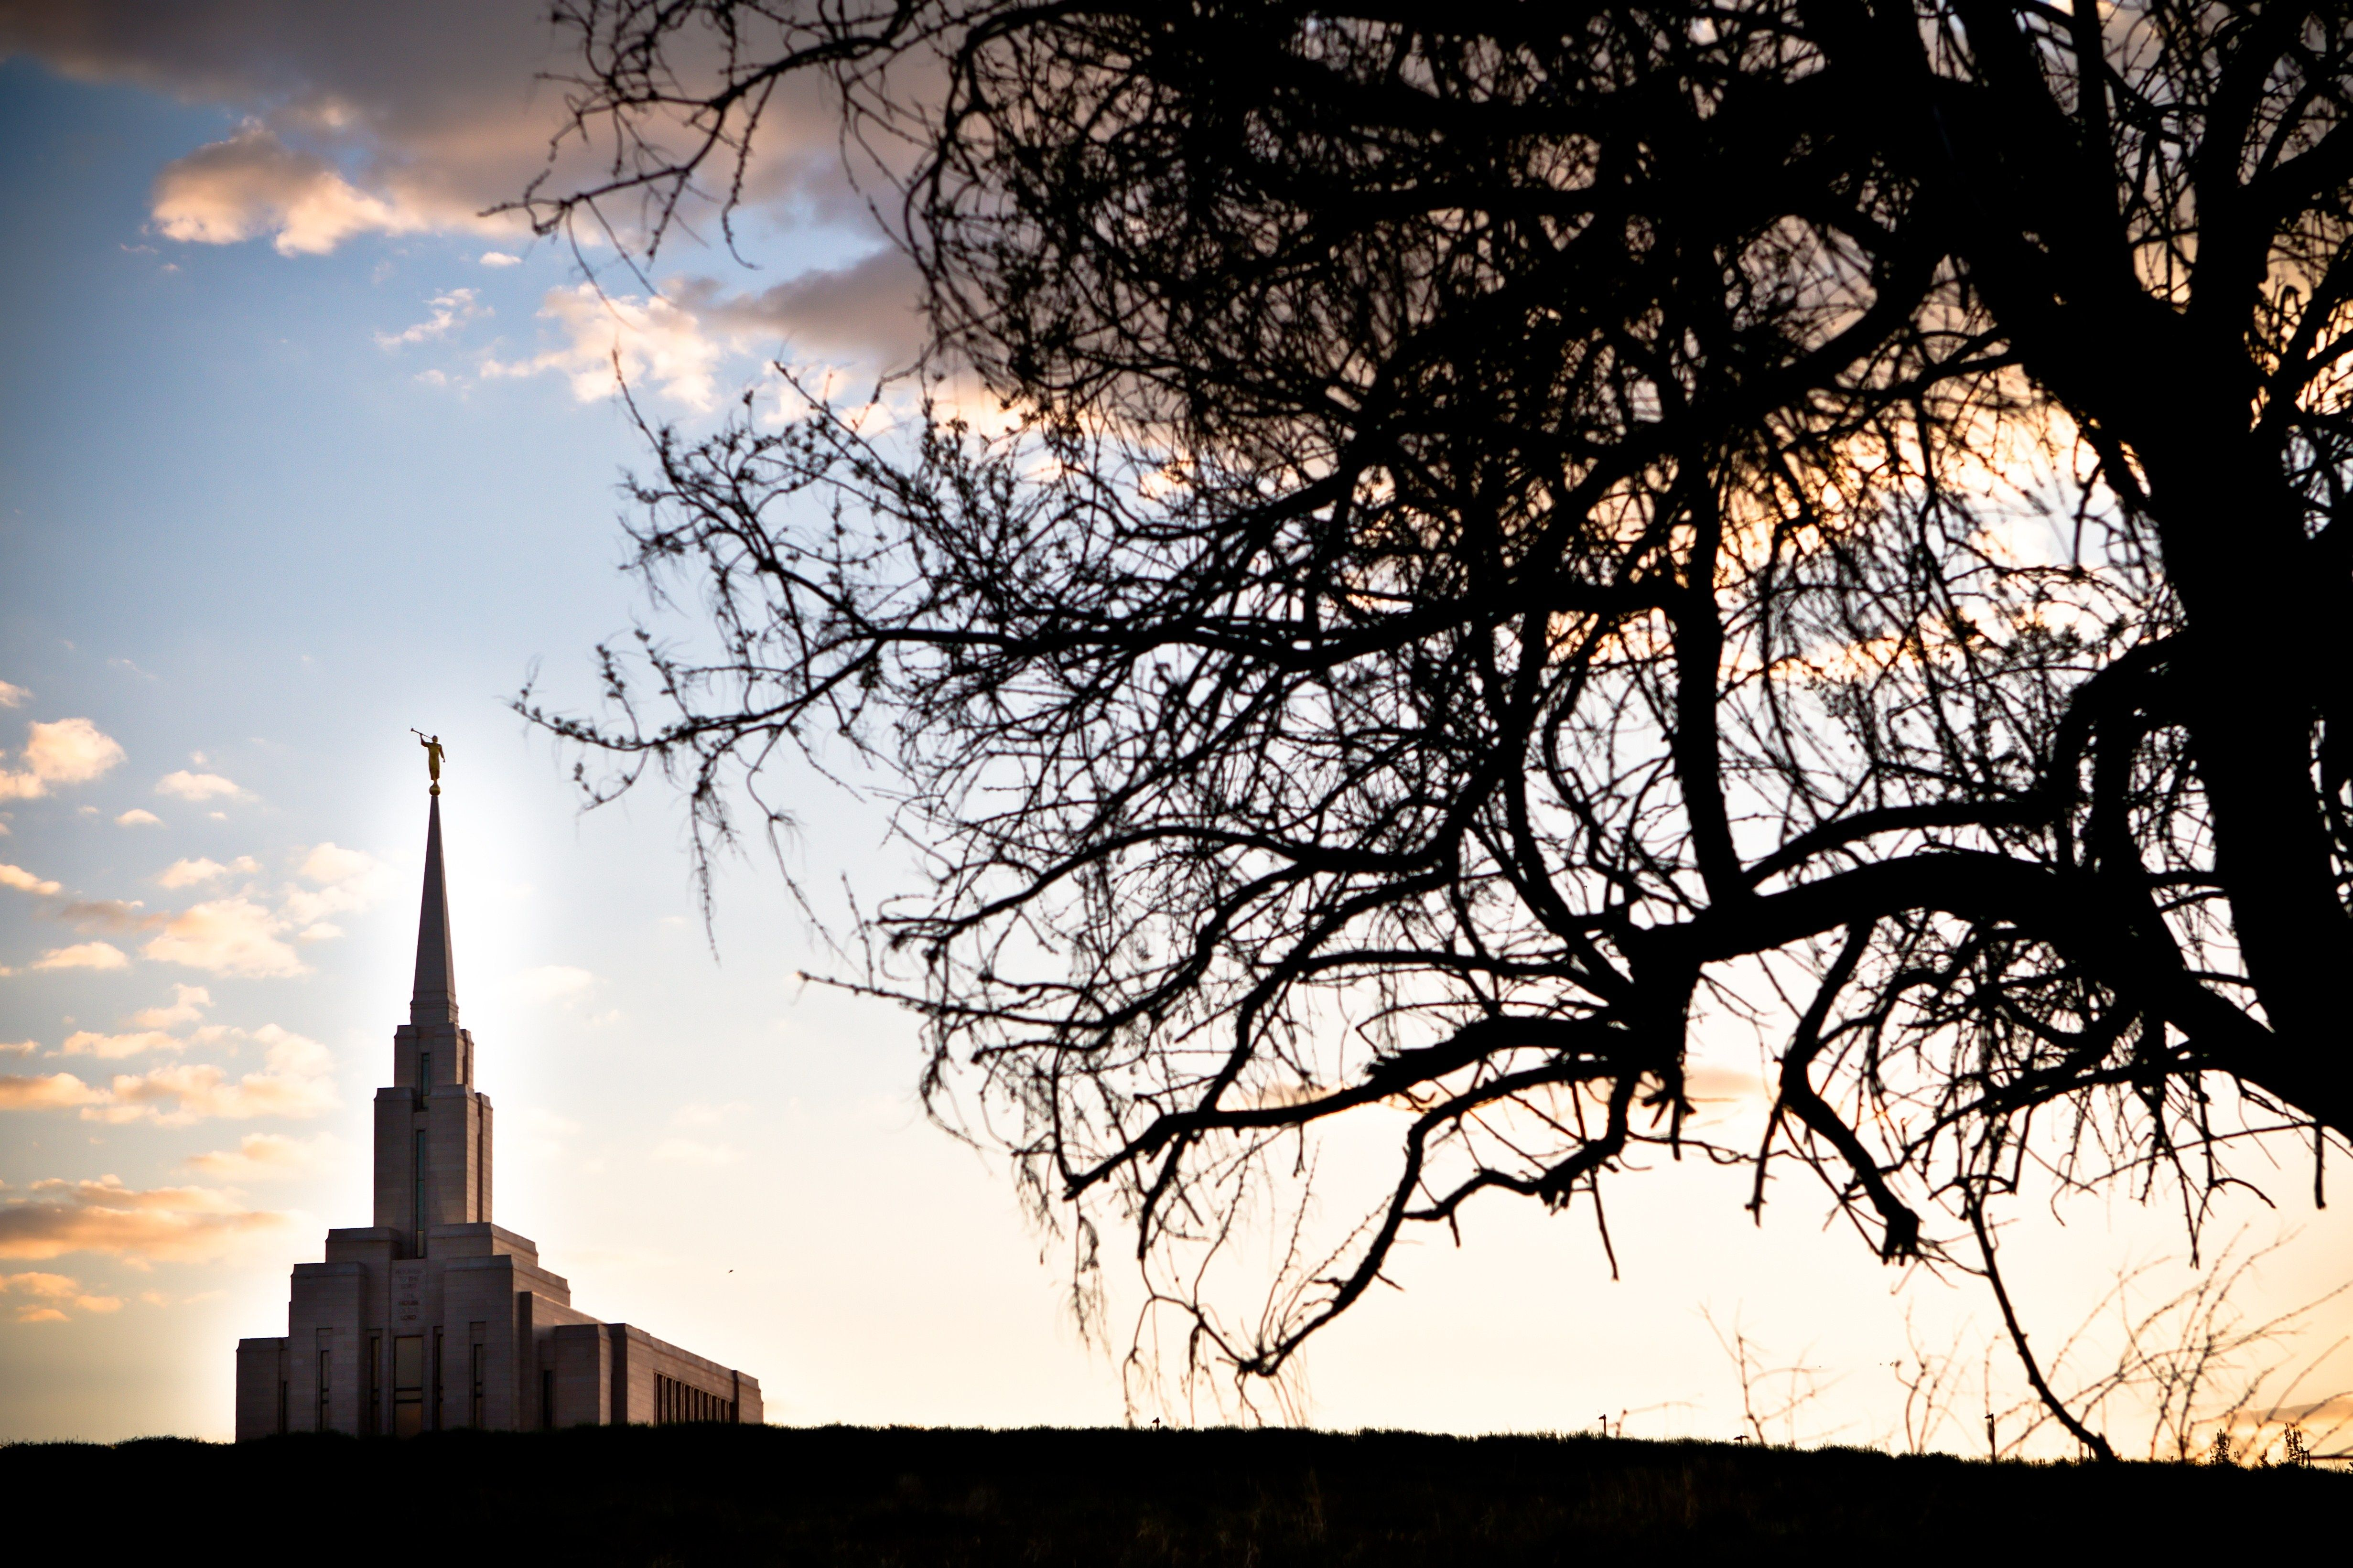 The Oquirrh Mountain Utah Temple at sunset, including scenery.